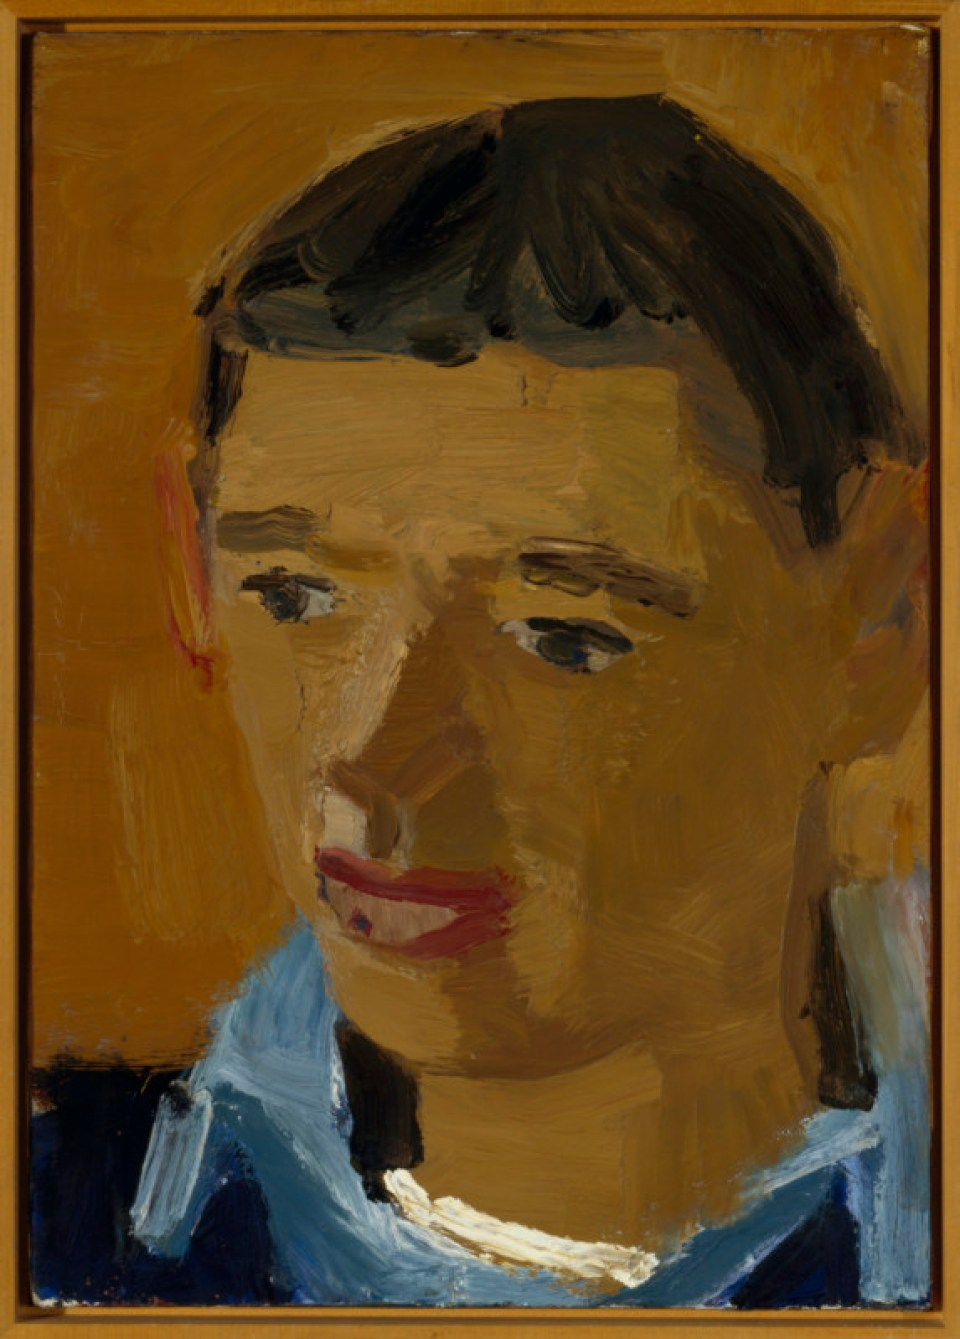 2.David Park, Portrait of Richard Diebenkorn, circa 1953. Oil on canvas, 21 x 15.25 in. Collection of the Oakland Museum of California, gift of Mrs. Roy Moore.